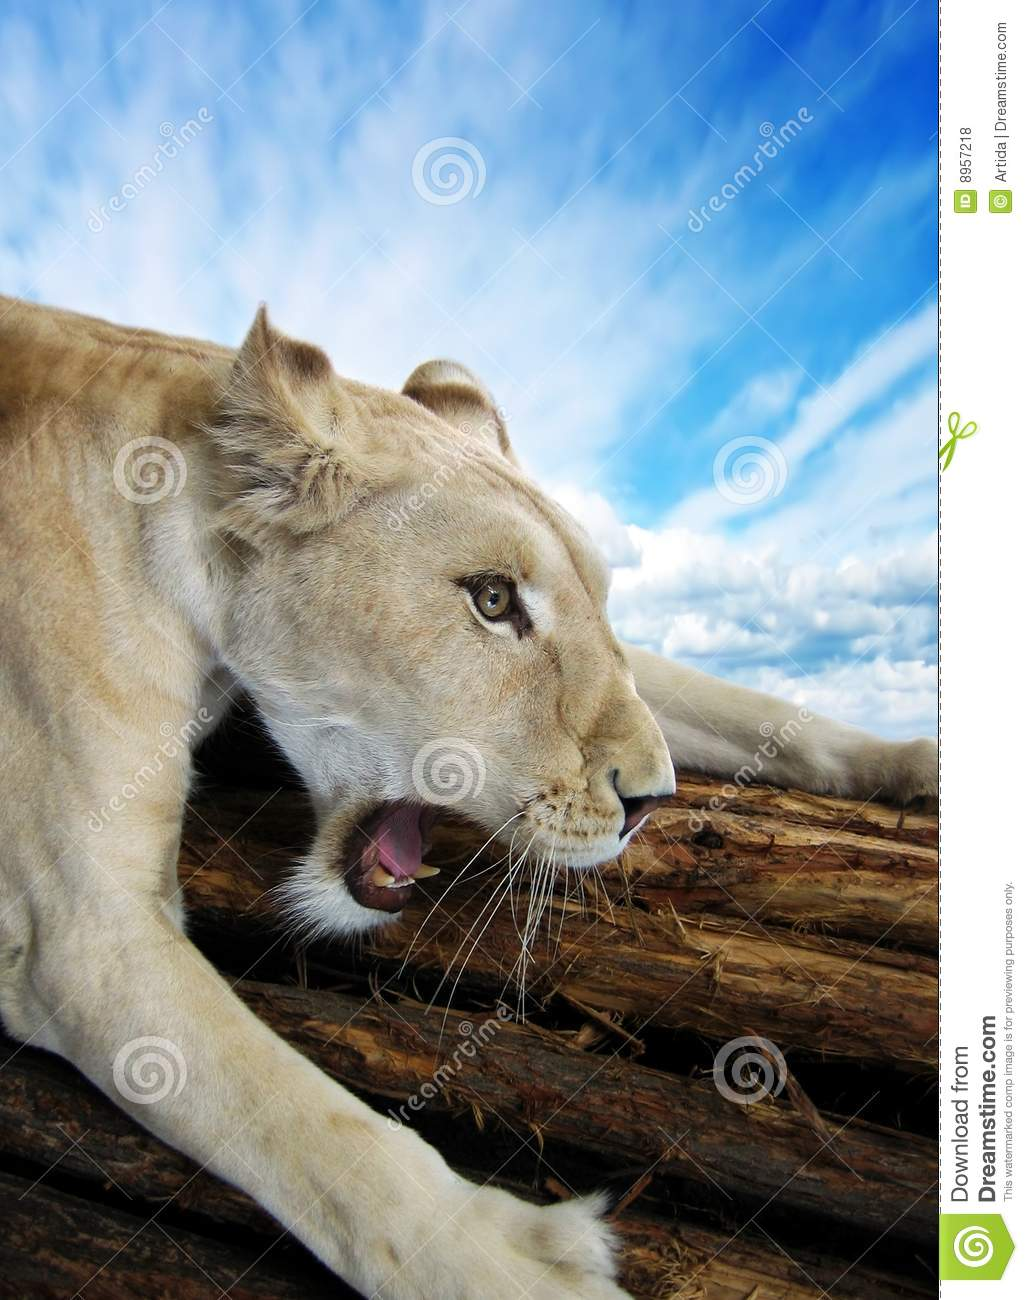 Beautiful rare African white lionesses